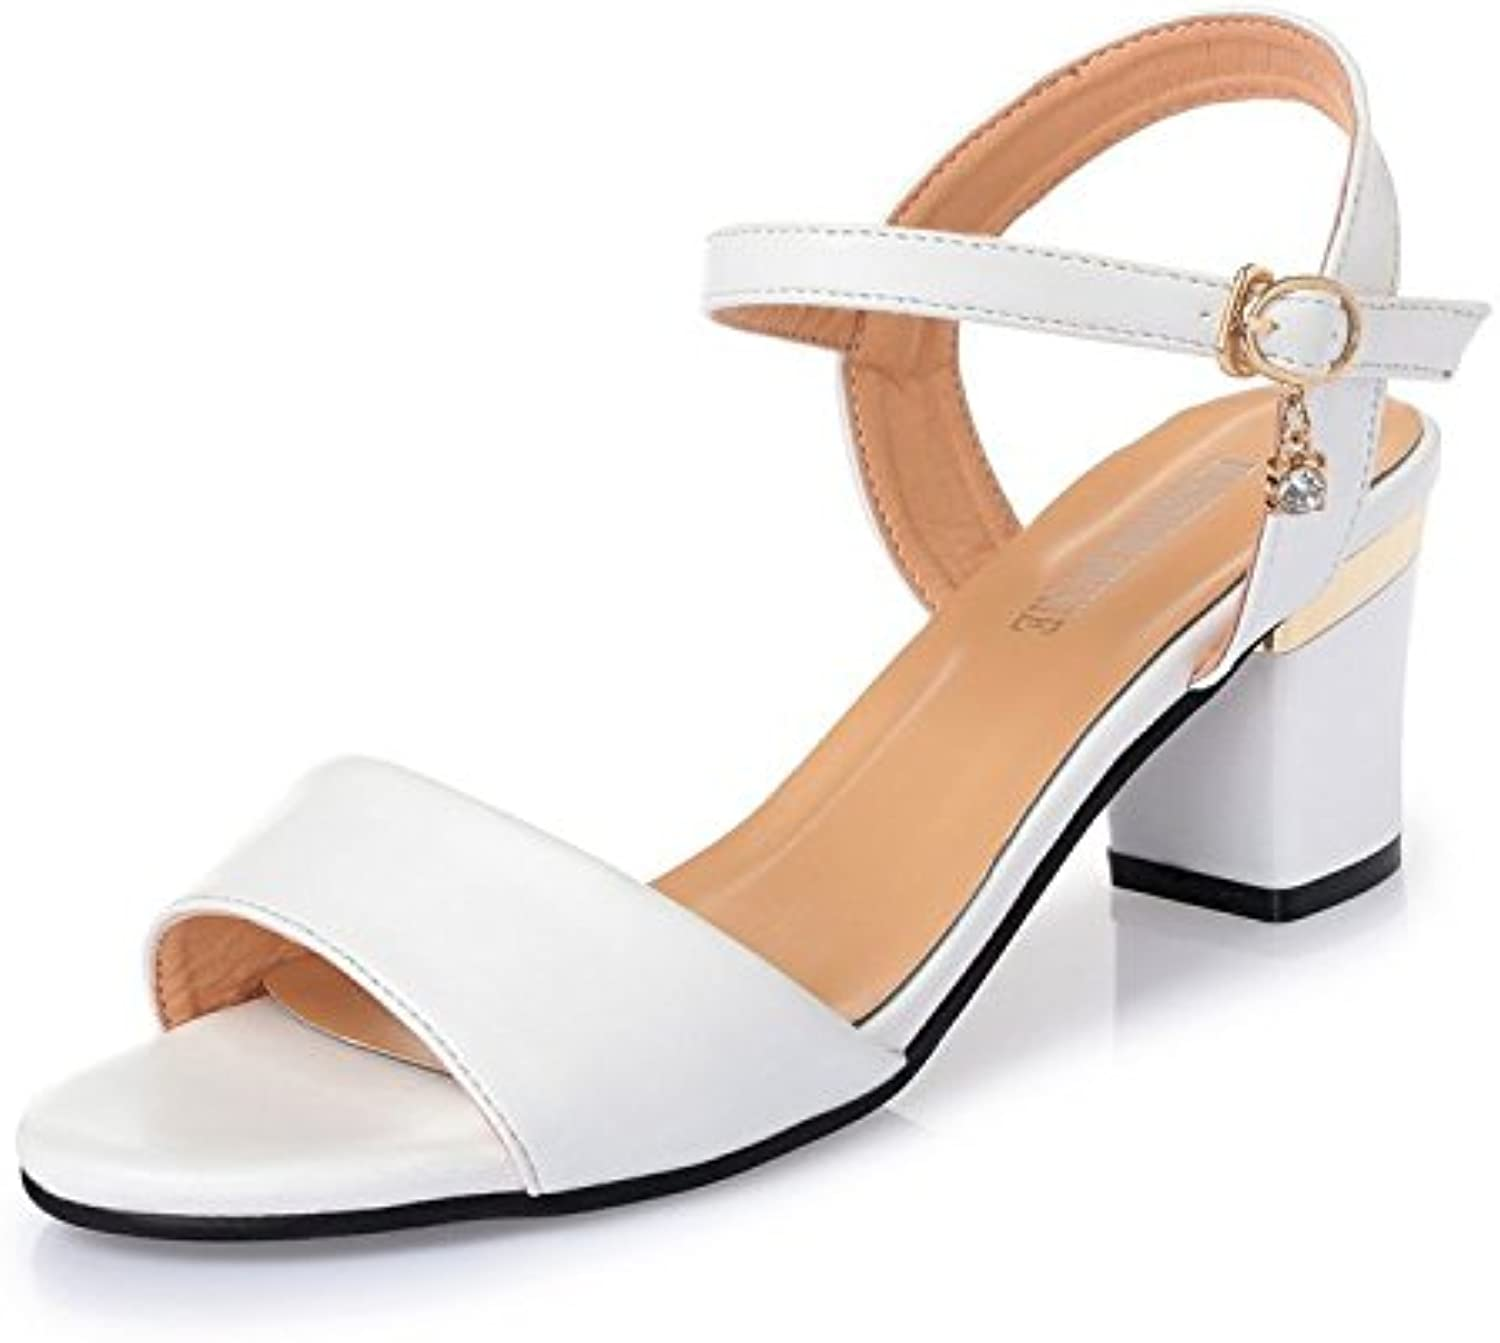 fdd7110186d GTVERNH Summer Sandals Women Middle-Aged With Bold Bold Bold Slotted  President Wild And 7Cm High-Heel Shoes Parent B07CRBYHJF ff1f9b